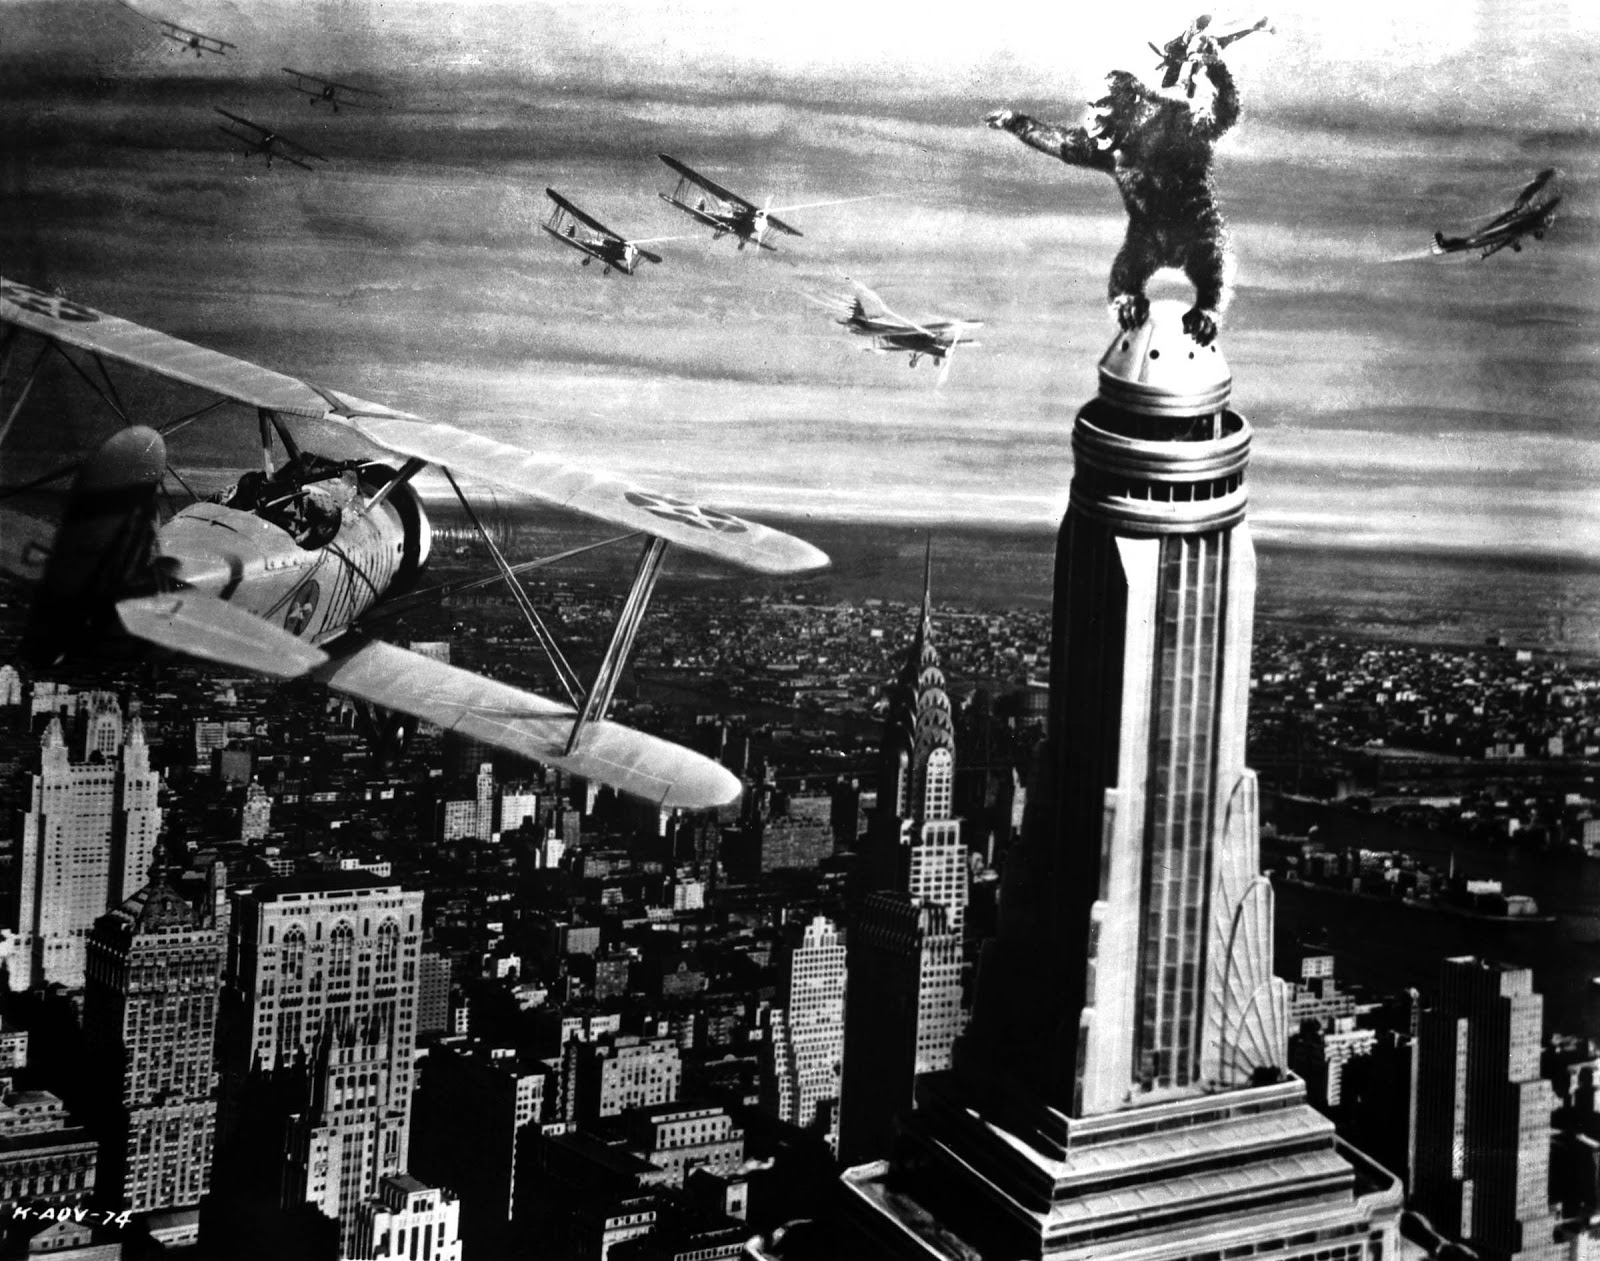 King Kong Empire State Building Drawing The empire state building King Kong Empire State Building With Girl